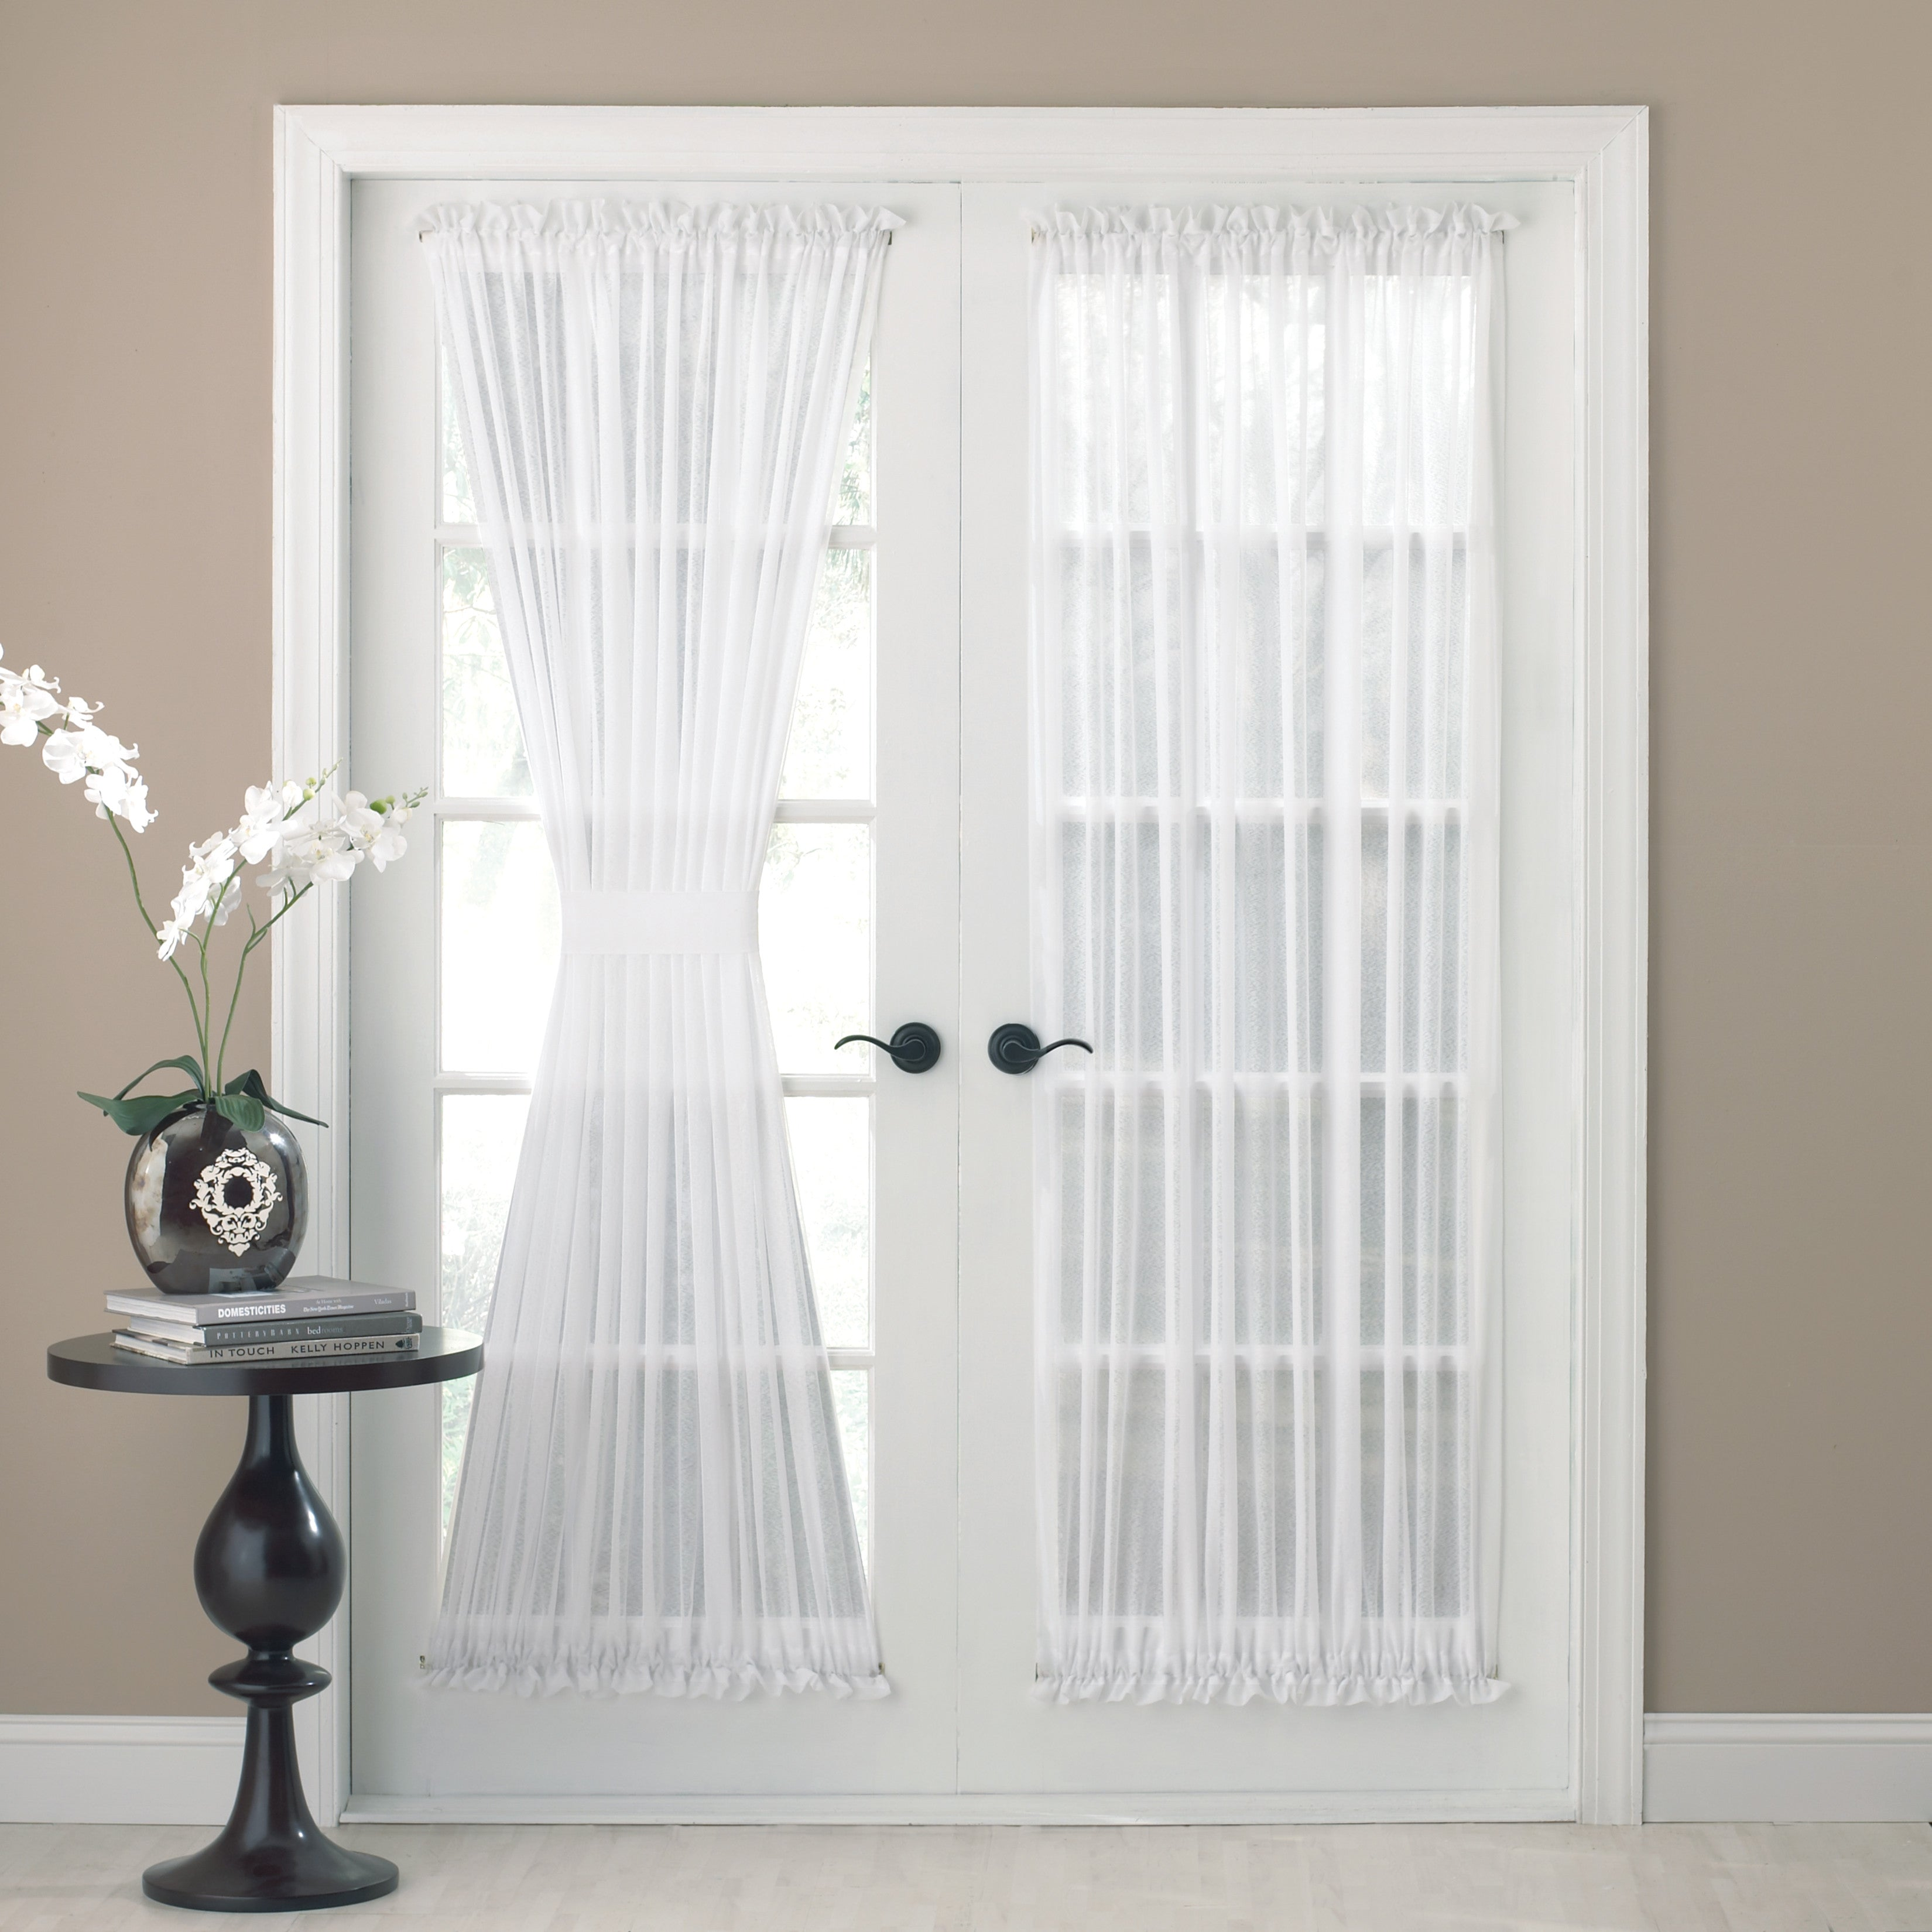 voile fresh best decoration panel to curtain window coverings white how simple hang panell valance glamorous curtains soho blinds and sheer